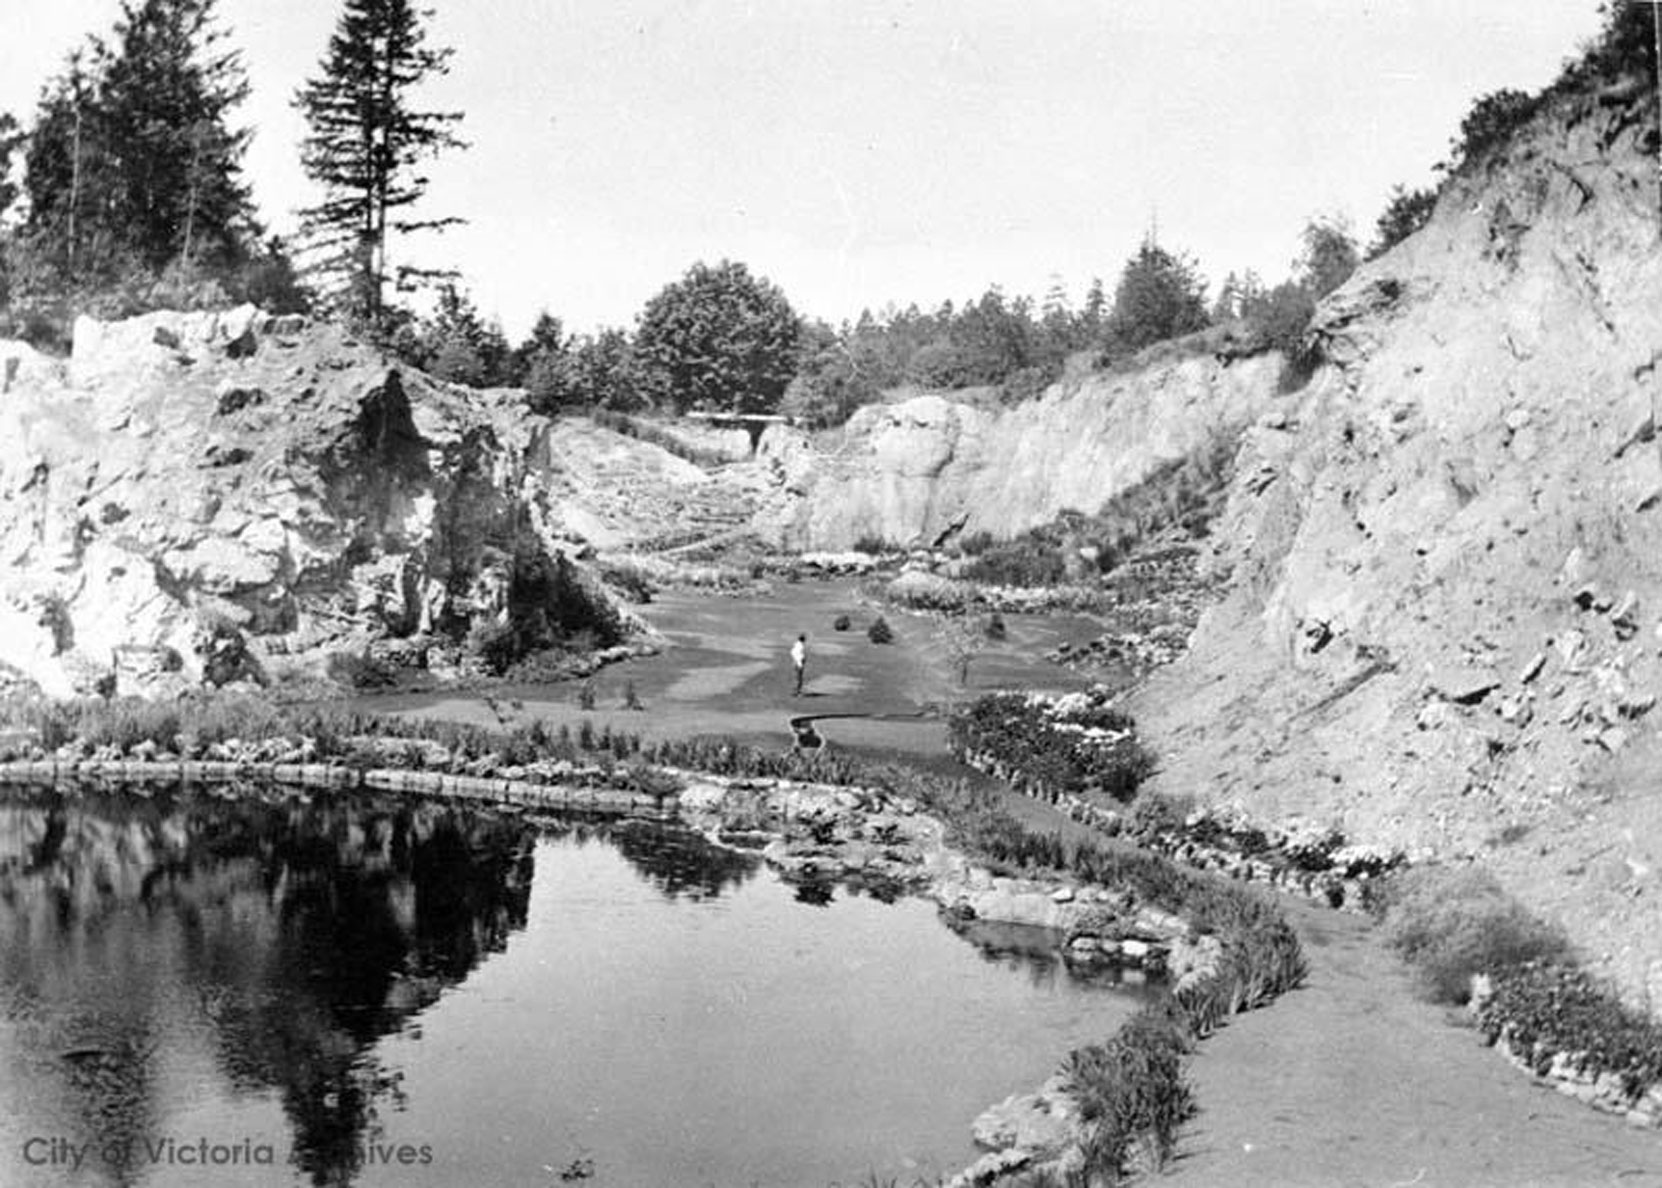 The Sunken Garden, the Mound and the Trout Pond, looking north, circa 1922. (City of Victoria Archives photo M05829)